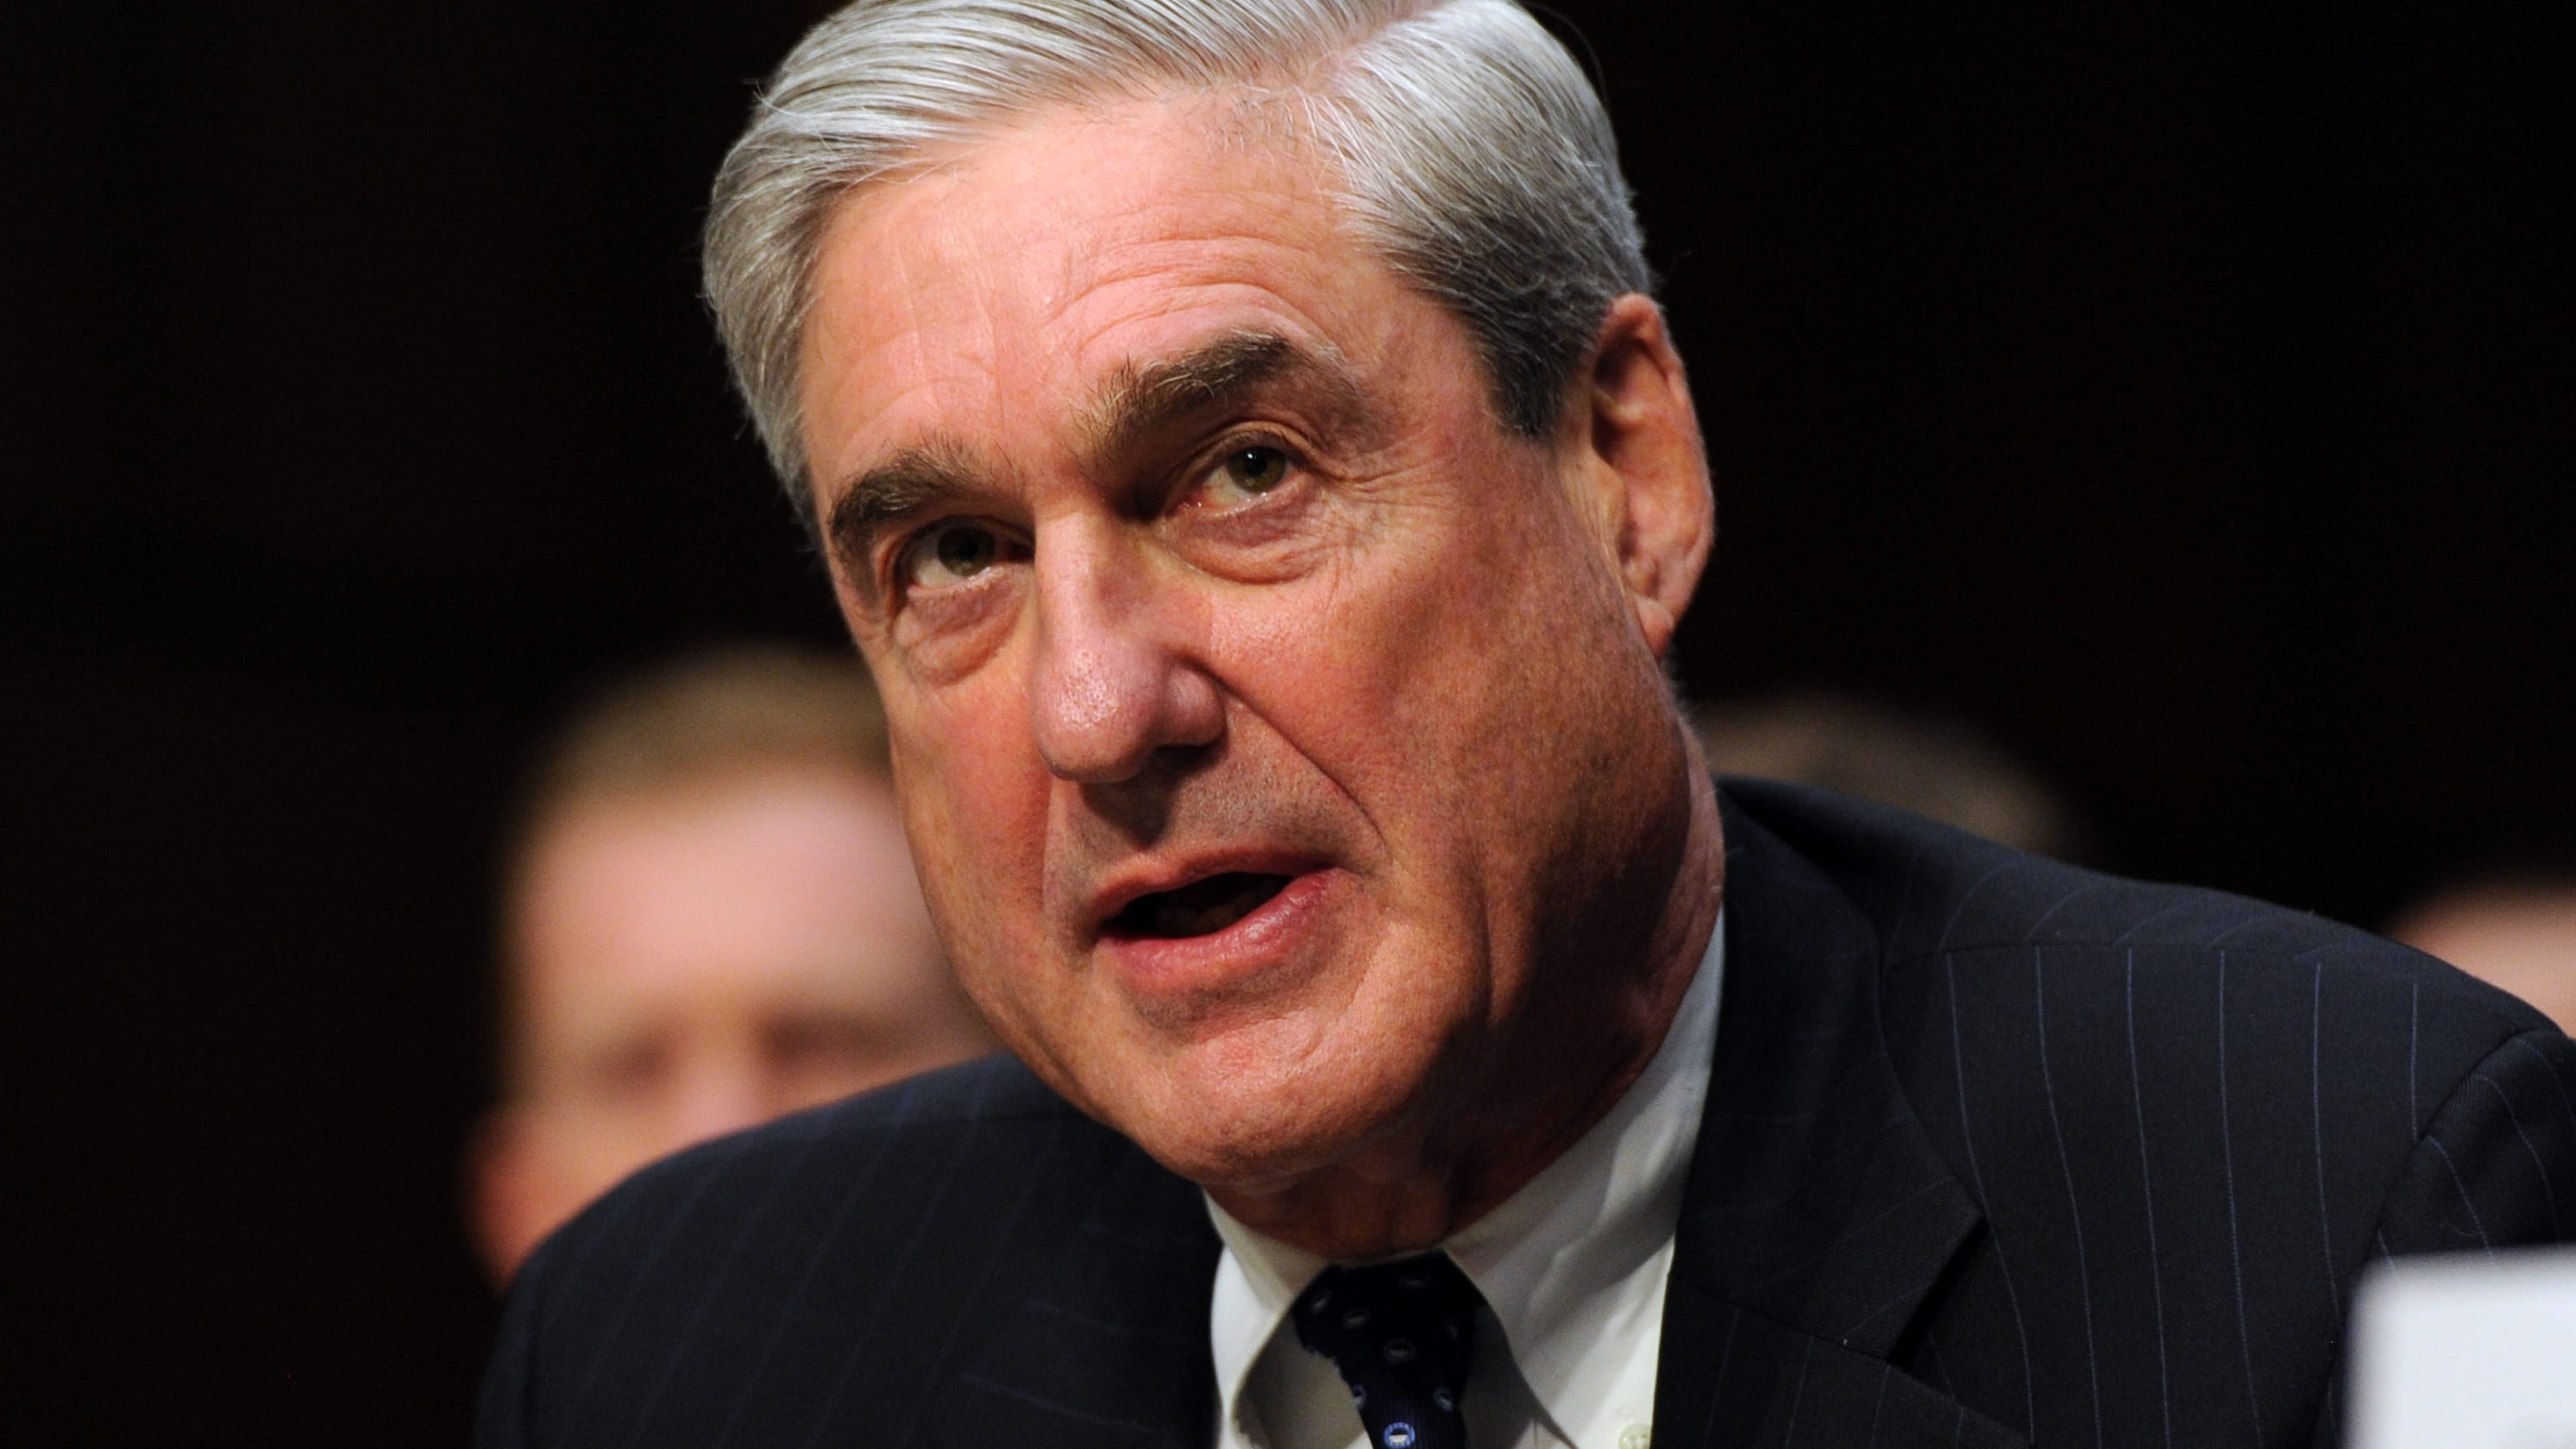 Waiting for the Mueller report: Justice Department could reveal conclusions of Russia inquiry on Sunday